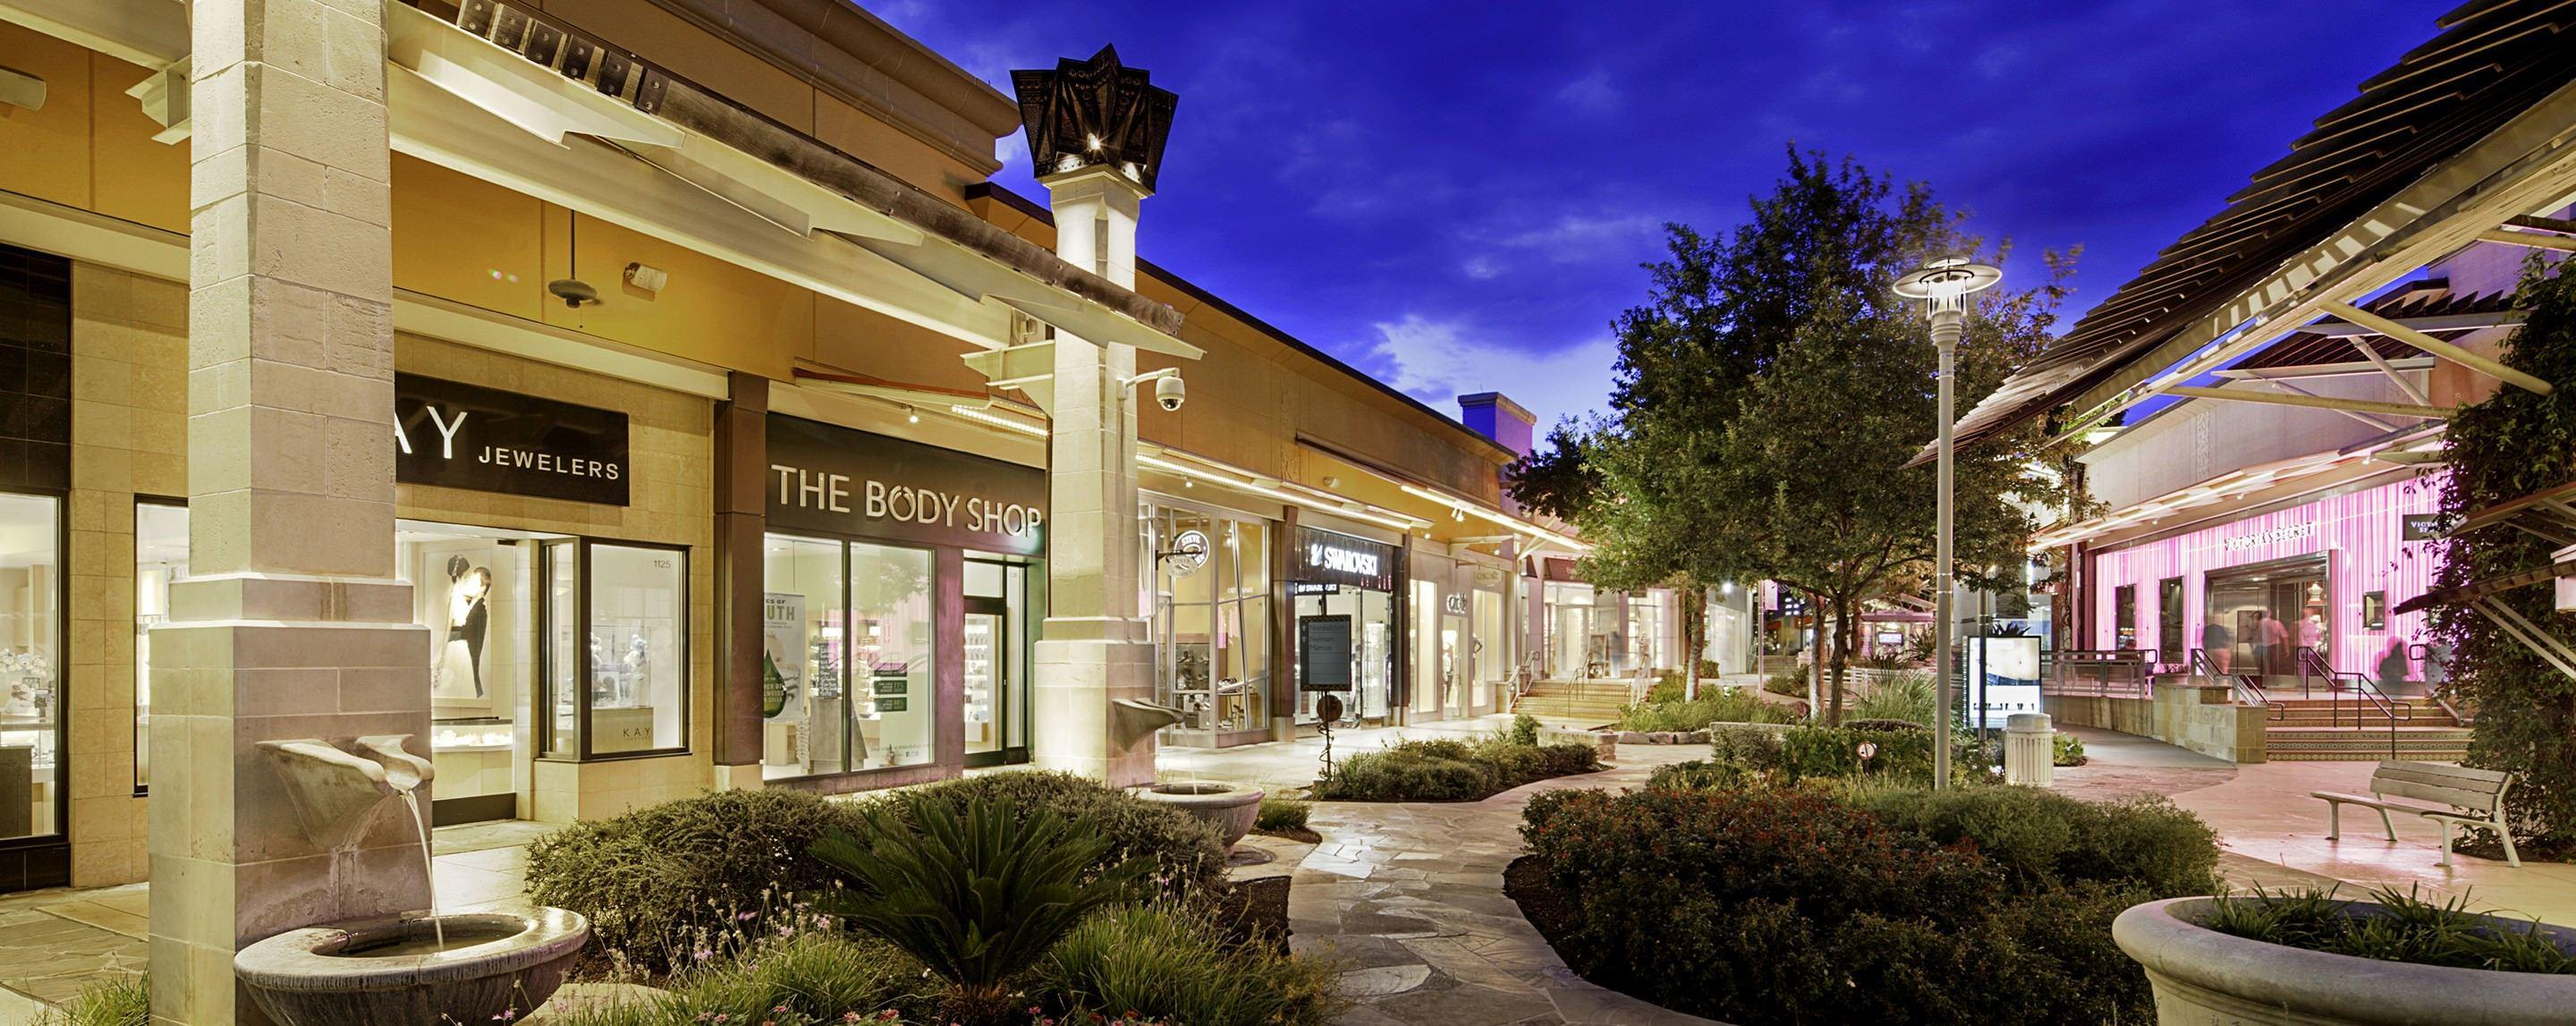 At night, a GGP property outdoor walkway has store fronts brightly lit with decorated with trees and plants.